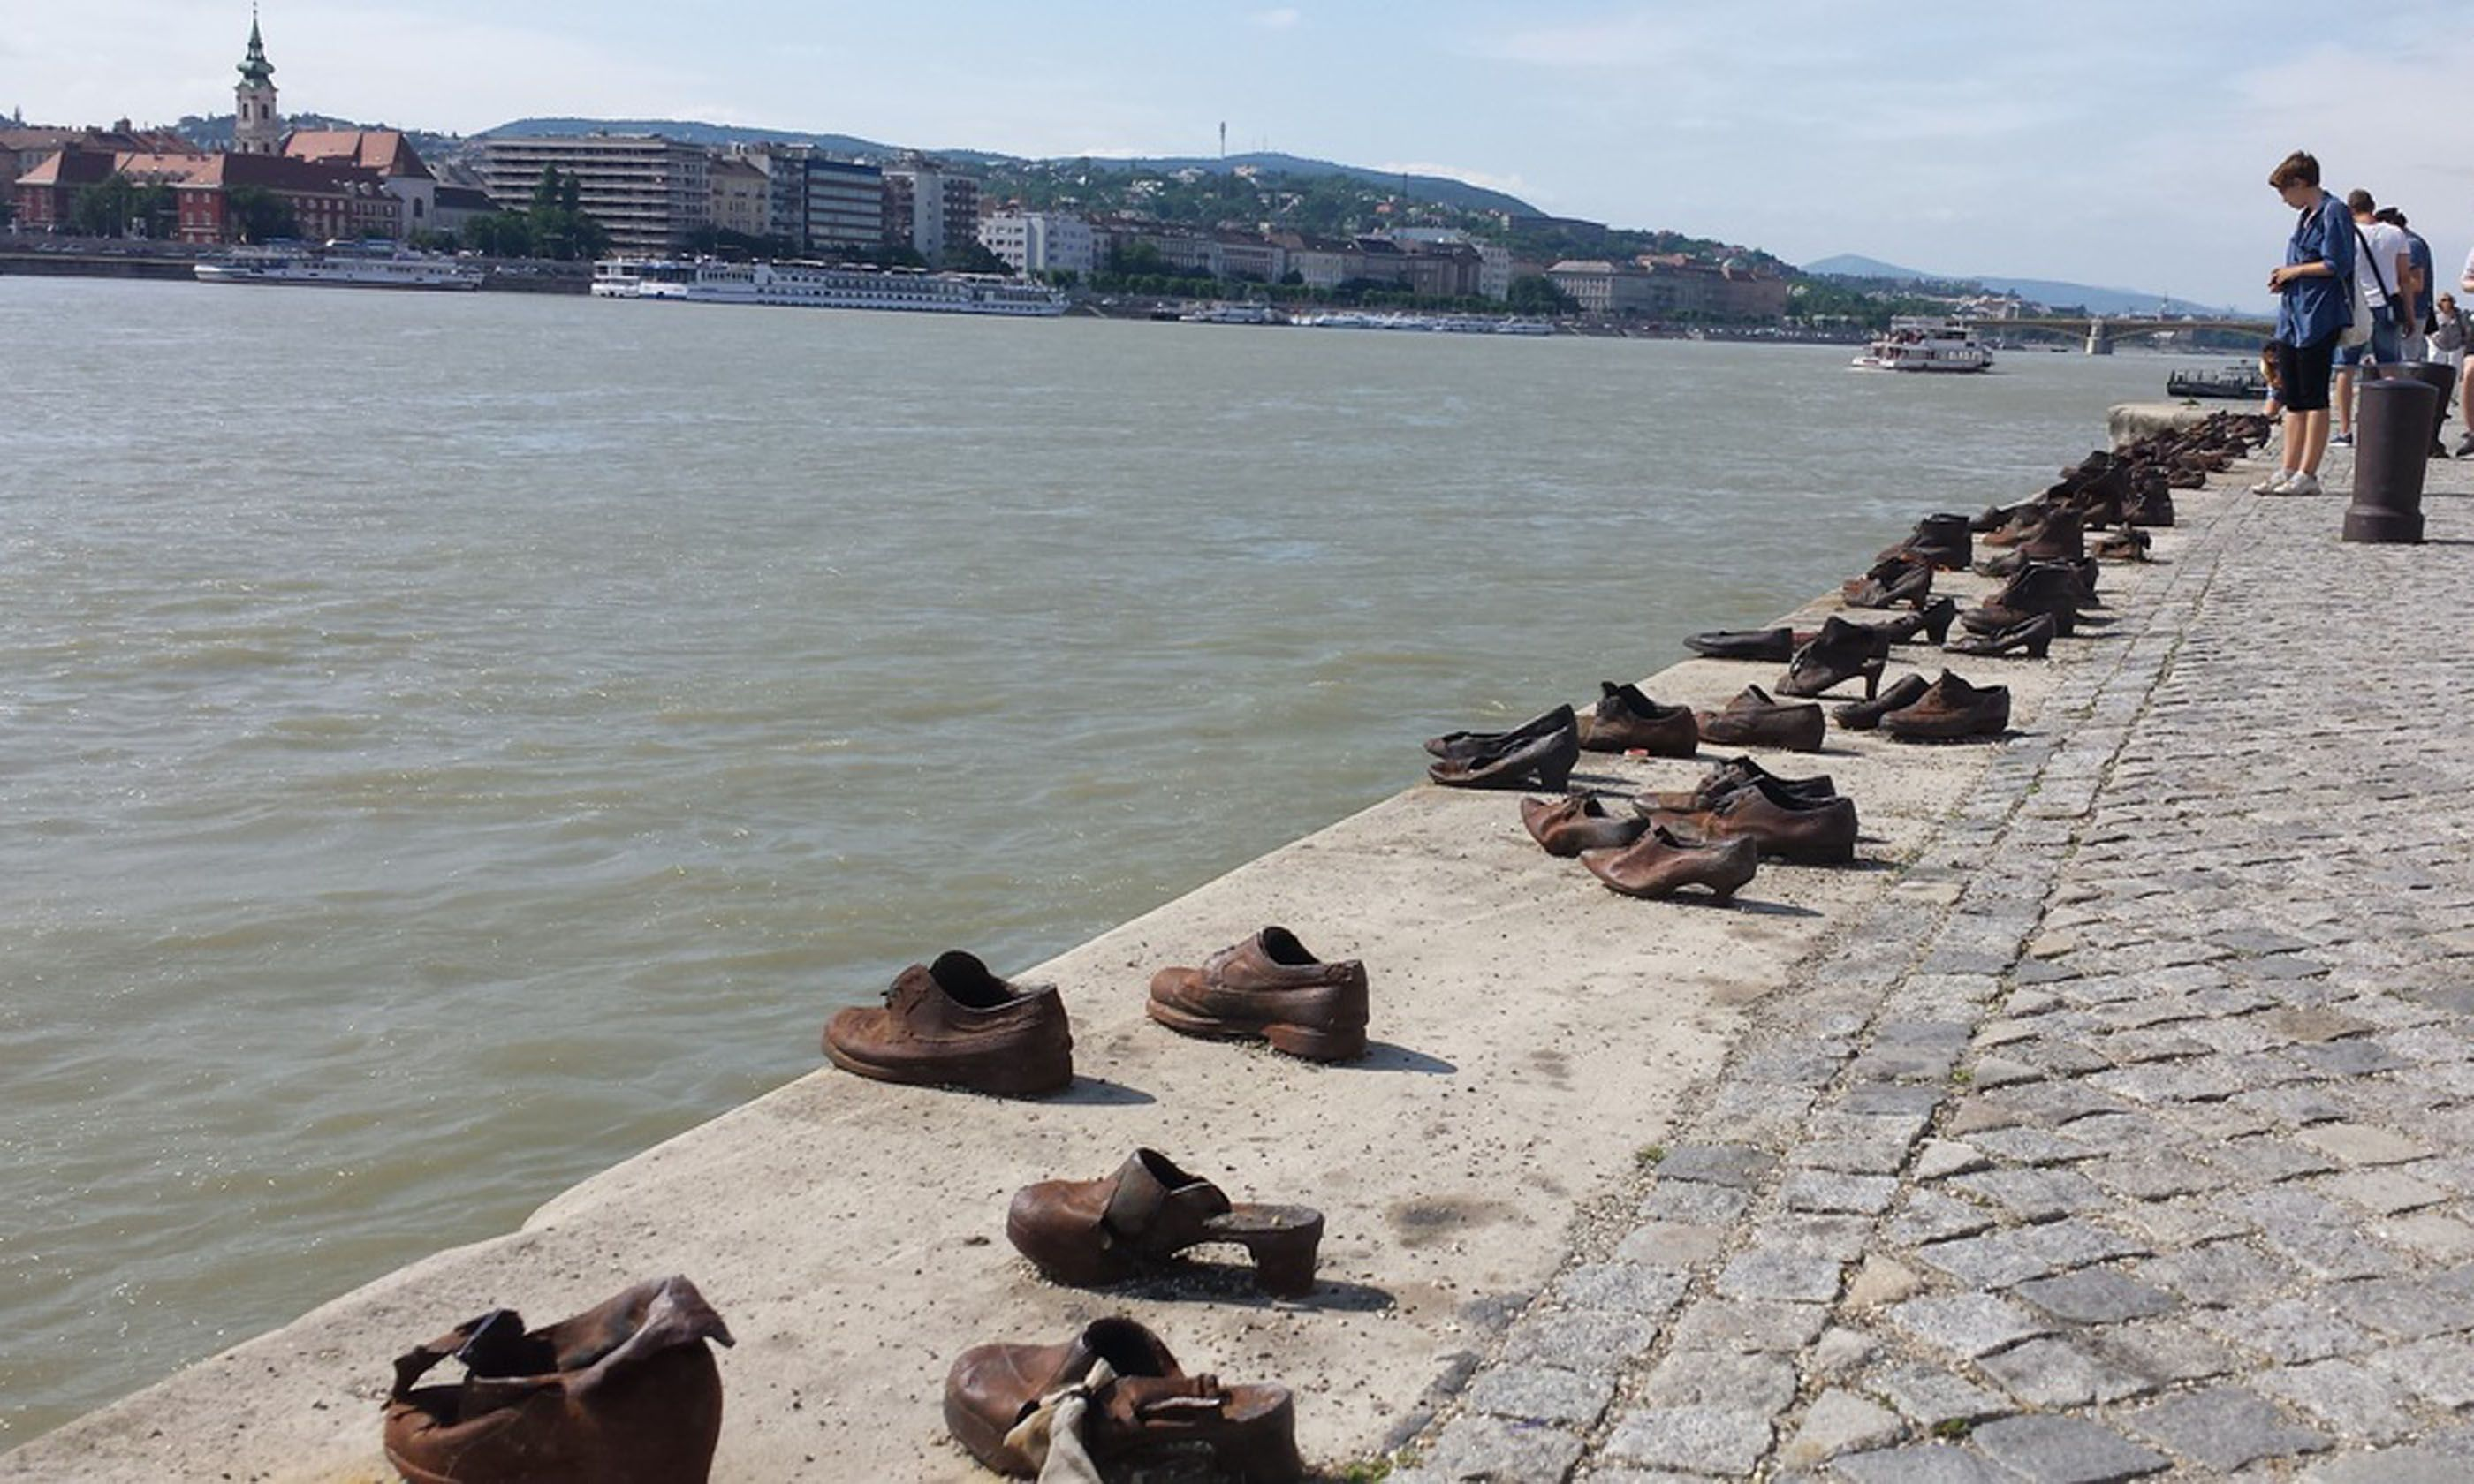 Shoes drying by the Danube (Rowen Sisters)